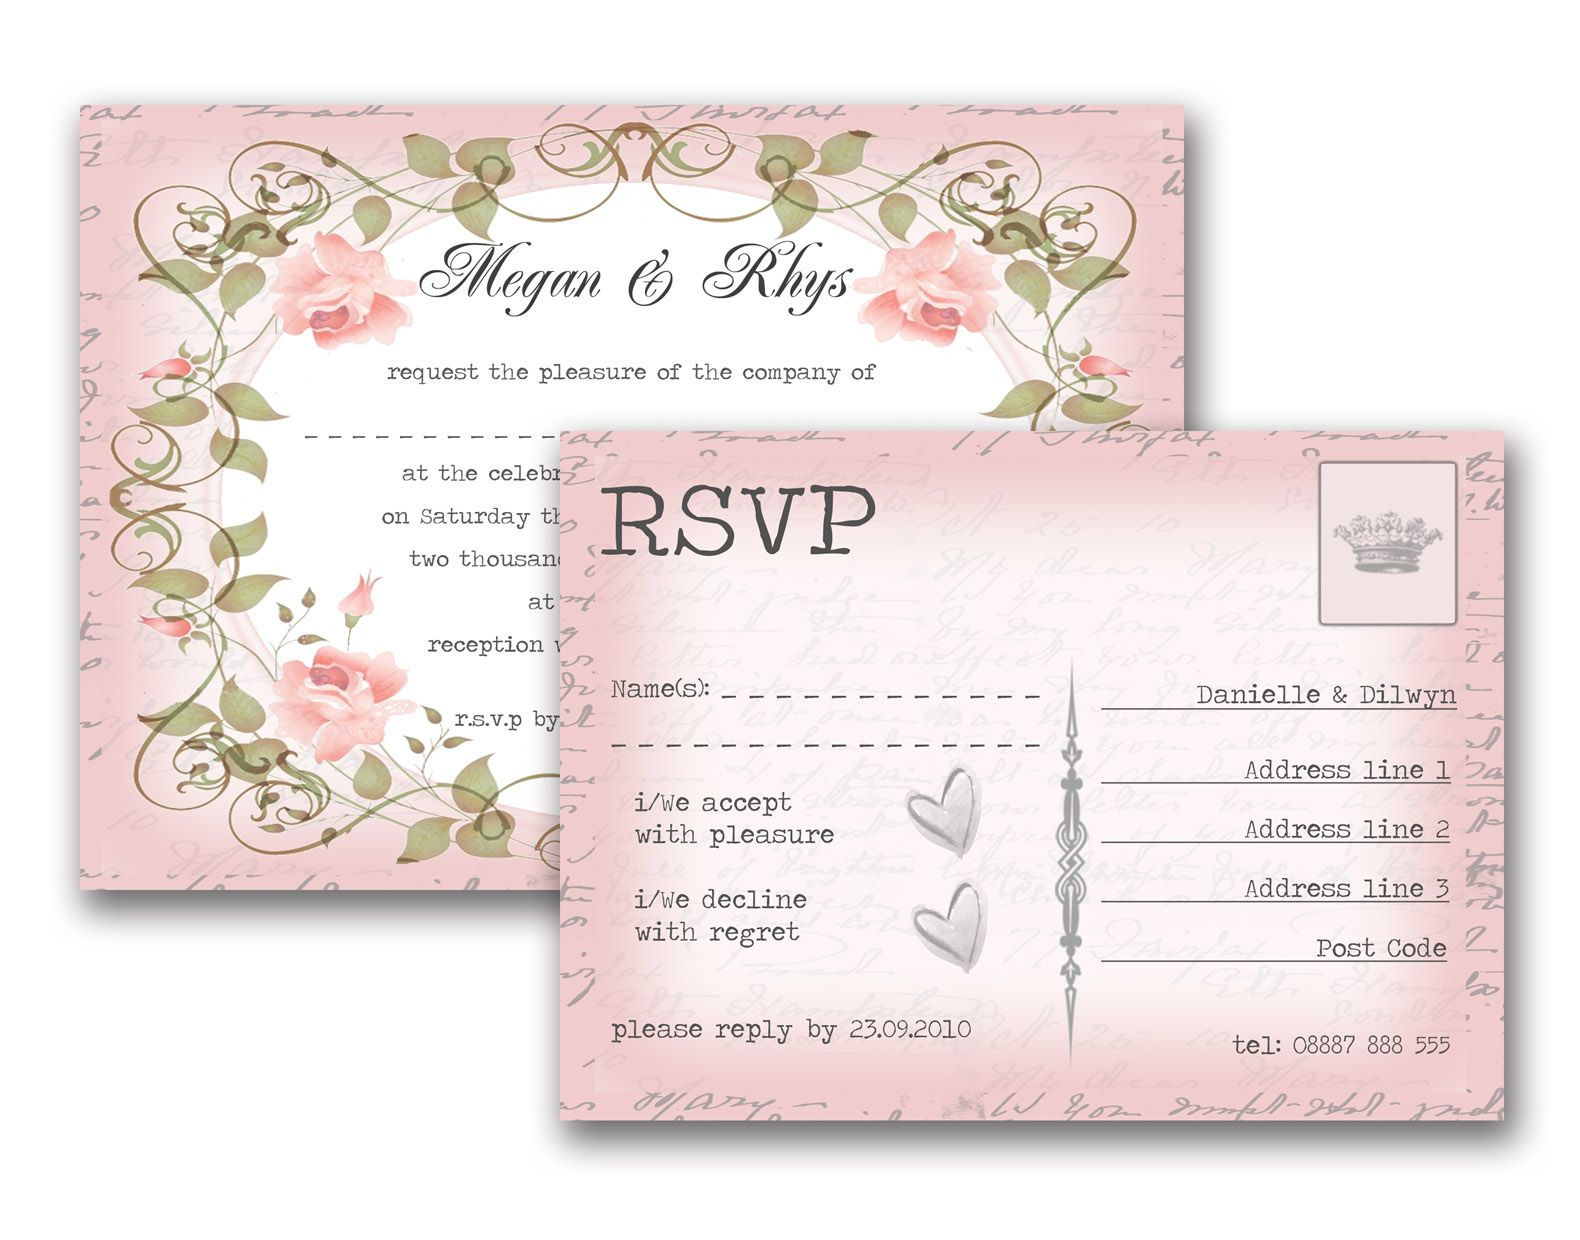 vintage floral invitation rsvp quriky eden craft project stationery wedding bride weddinginvitation - Wedding Invitation Rsvp Wording